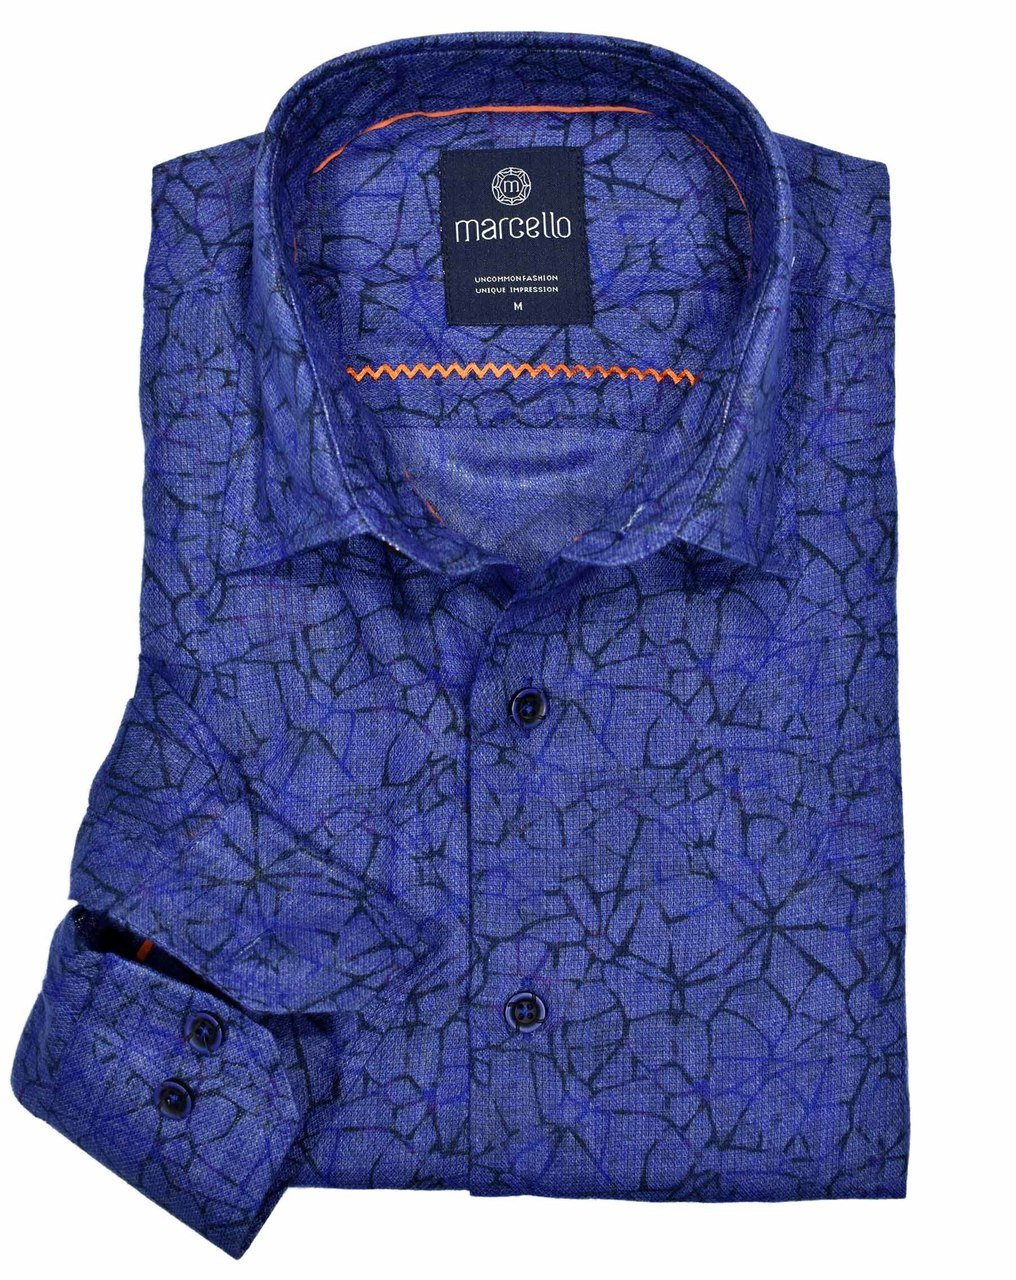 W1087 Fractured Print Shirt - Marcello Sport